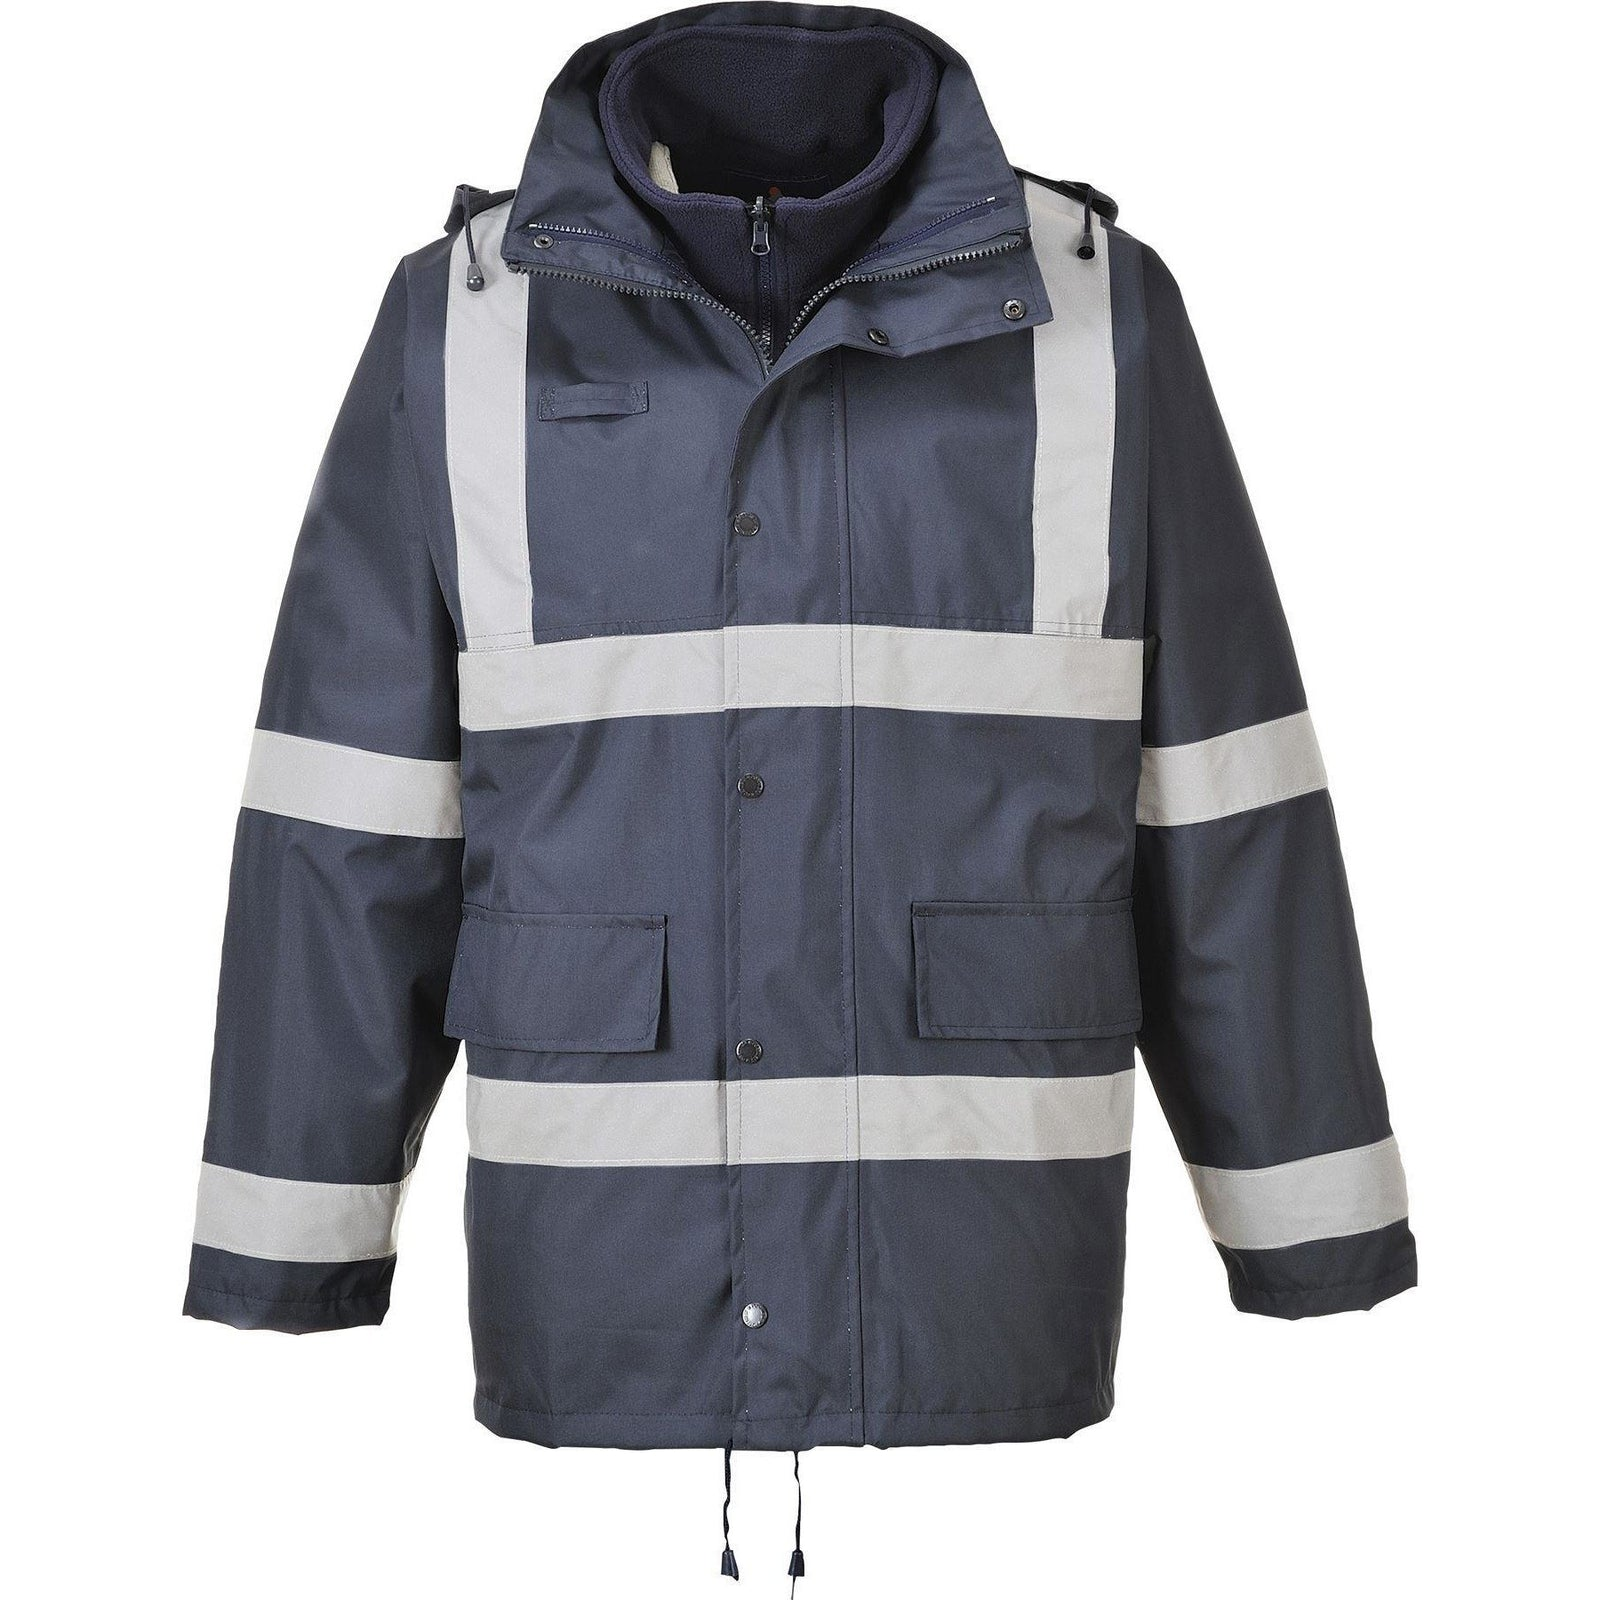 Portwest Iona 3 in 1 Traffic Jacket S431 - reid outdoors